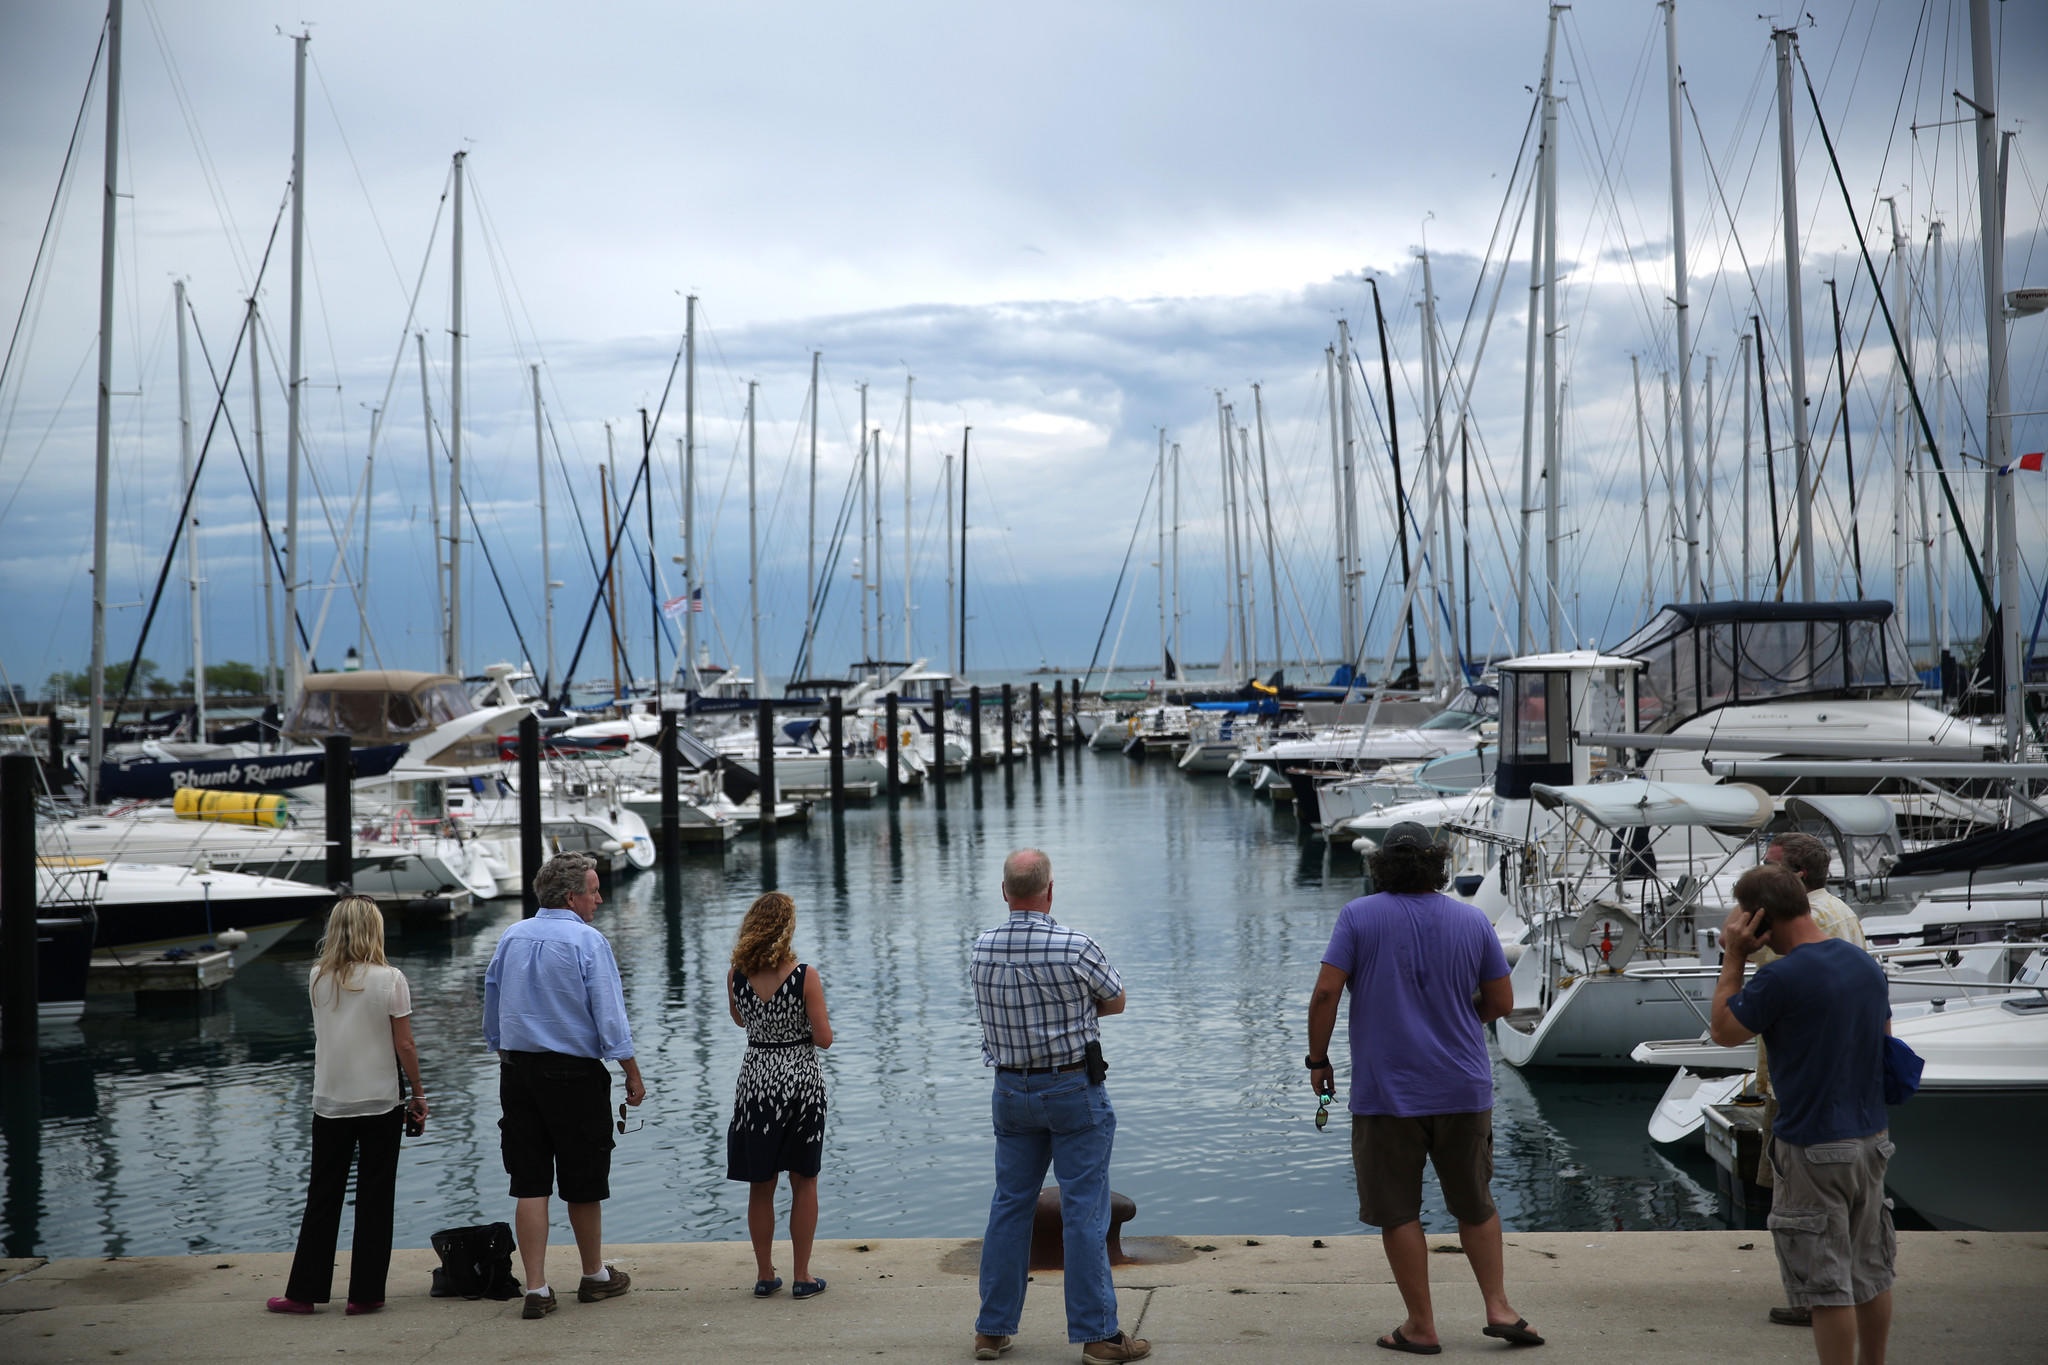 Boat owners watch as a pier (at right) drifts toward another row of boats after being damaged by a sudden storm at DuSable Harbor on Monday.